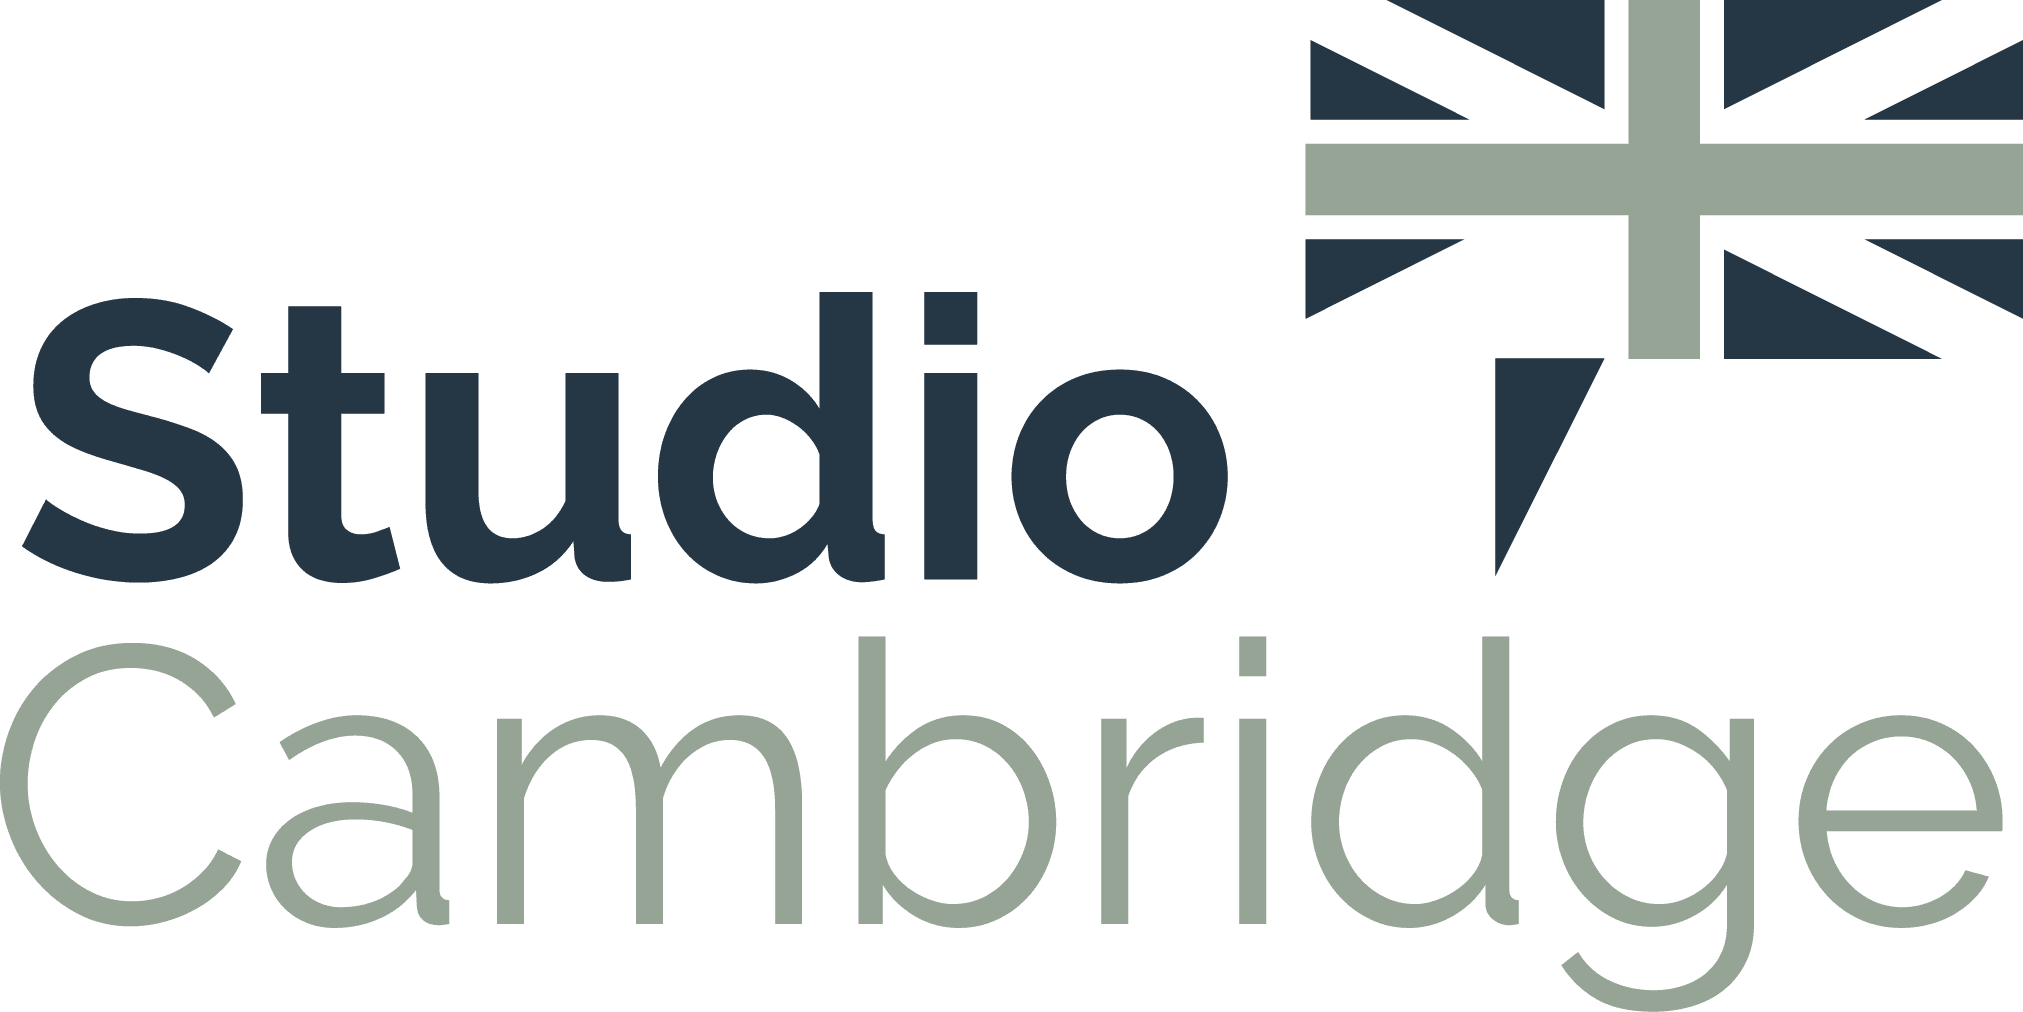 Studio Cambridge - Sir Christopher Yaz Okulu Logo